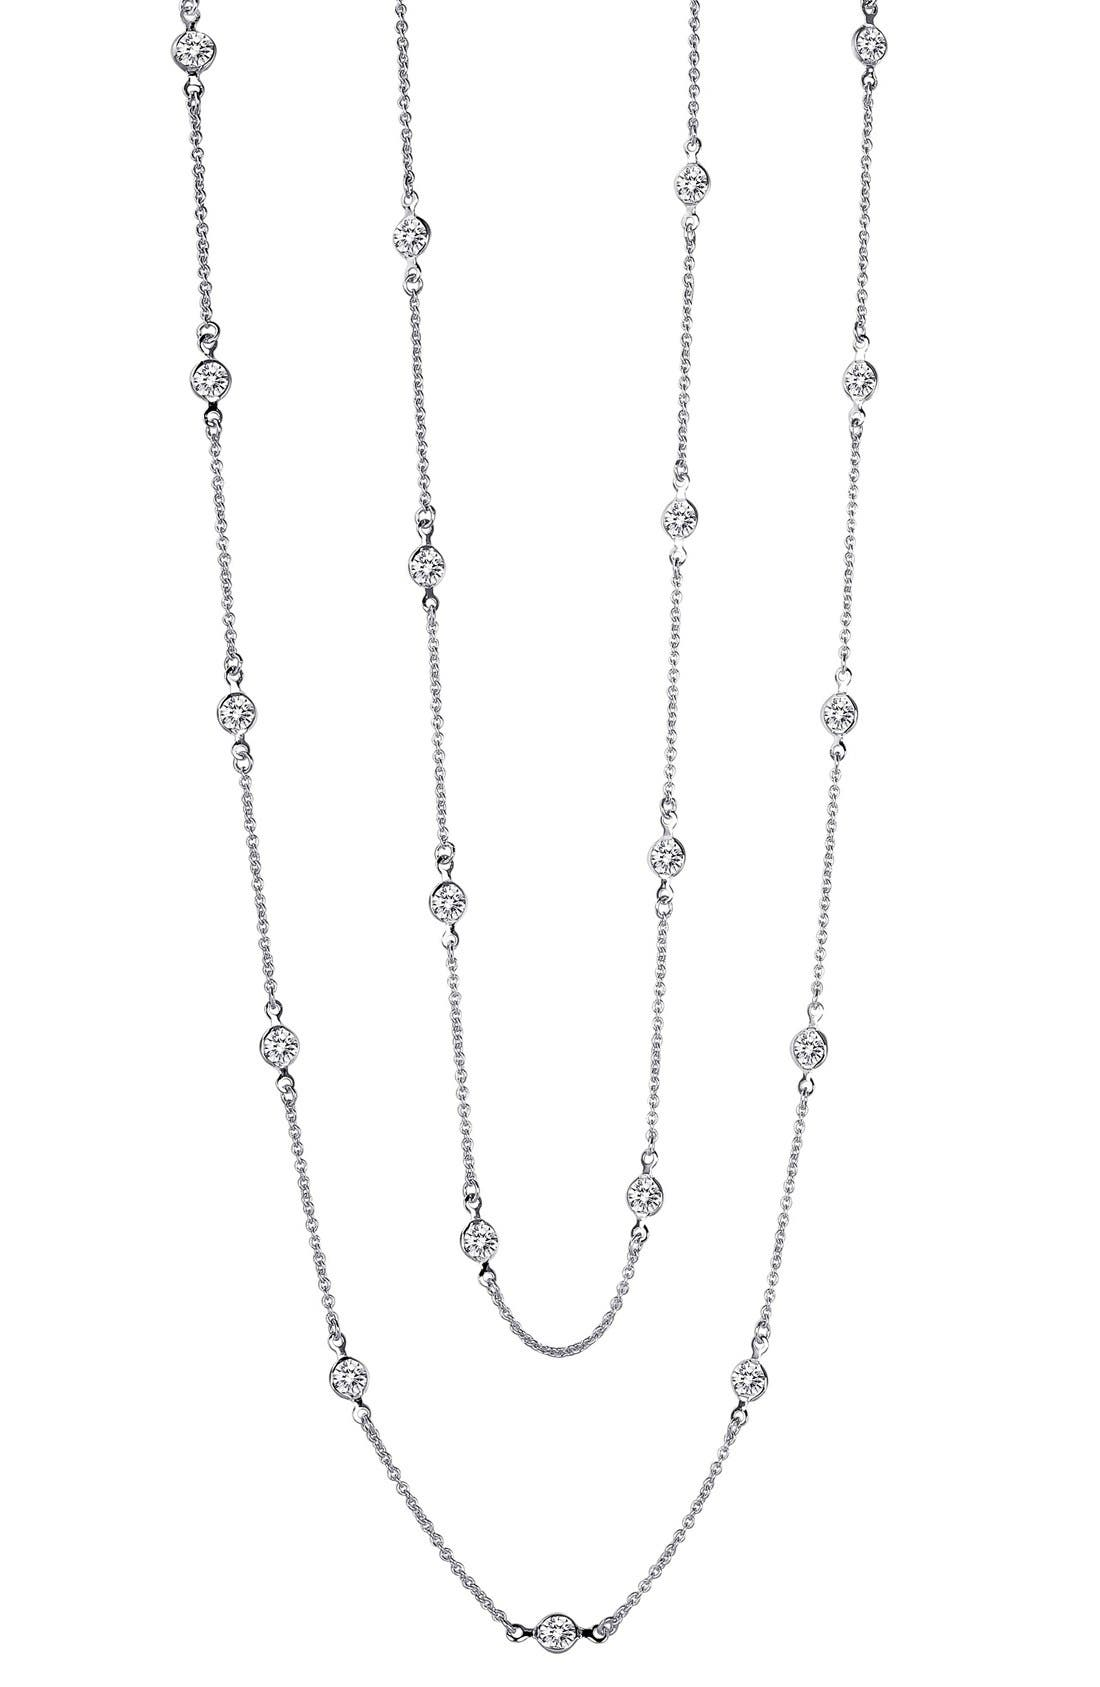 Station Necklace,                         Main,                         color, SILVER